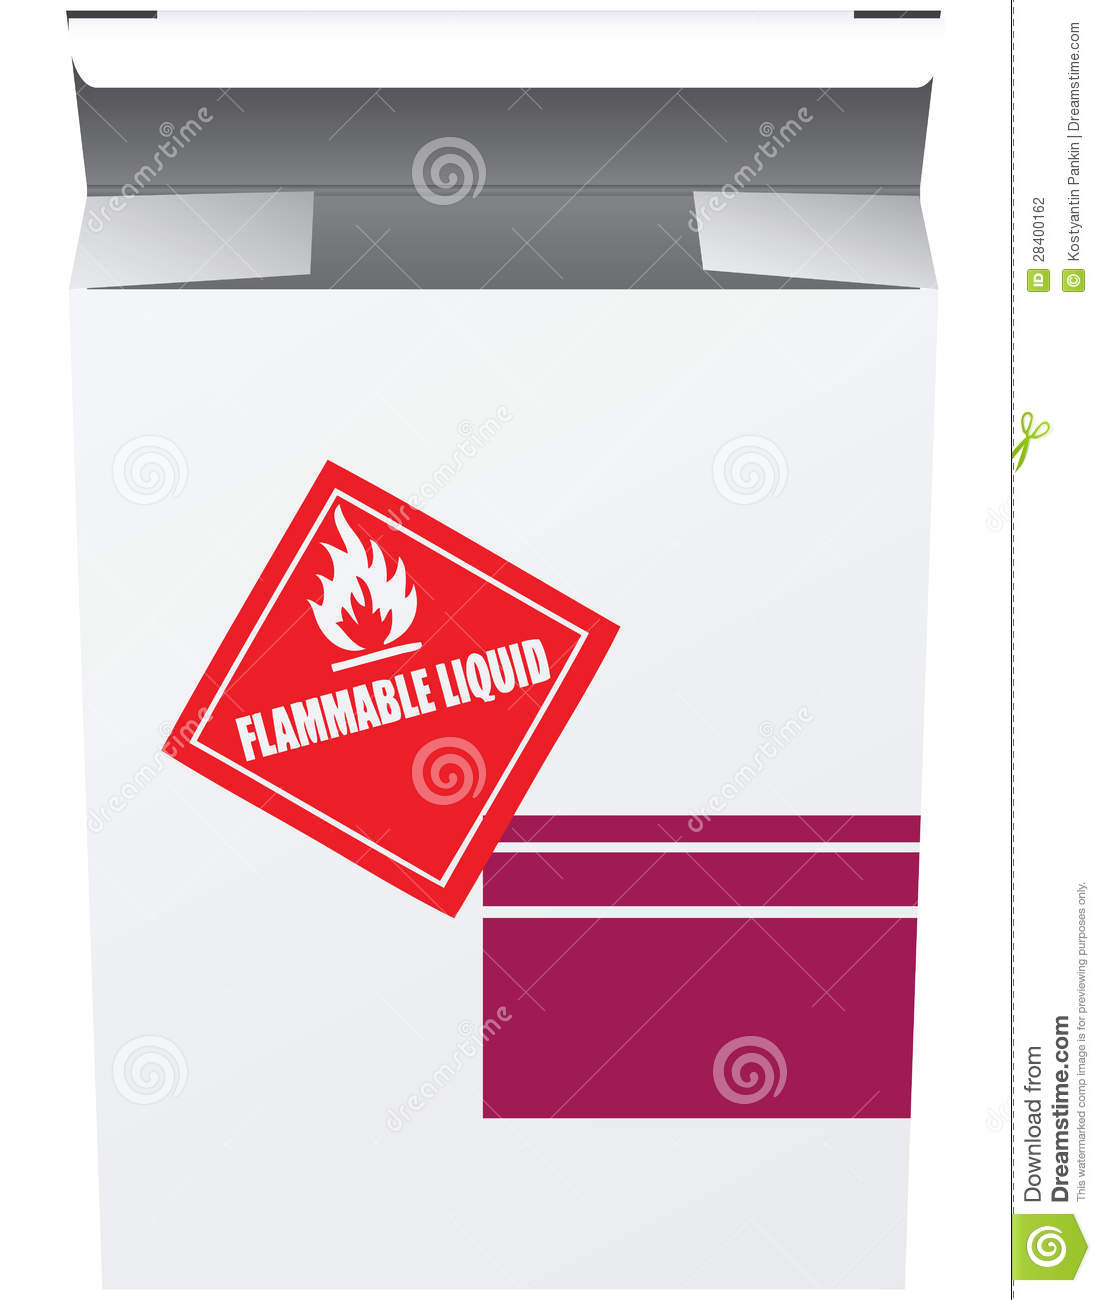 Box For Flammable Liquid Stock Vector Illustration Of Background